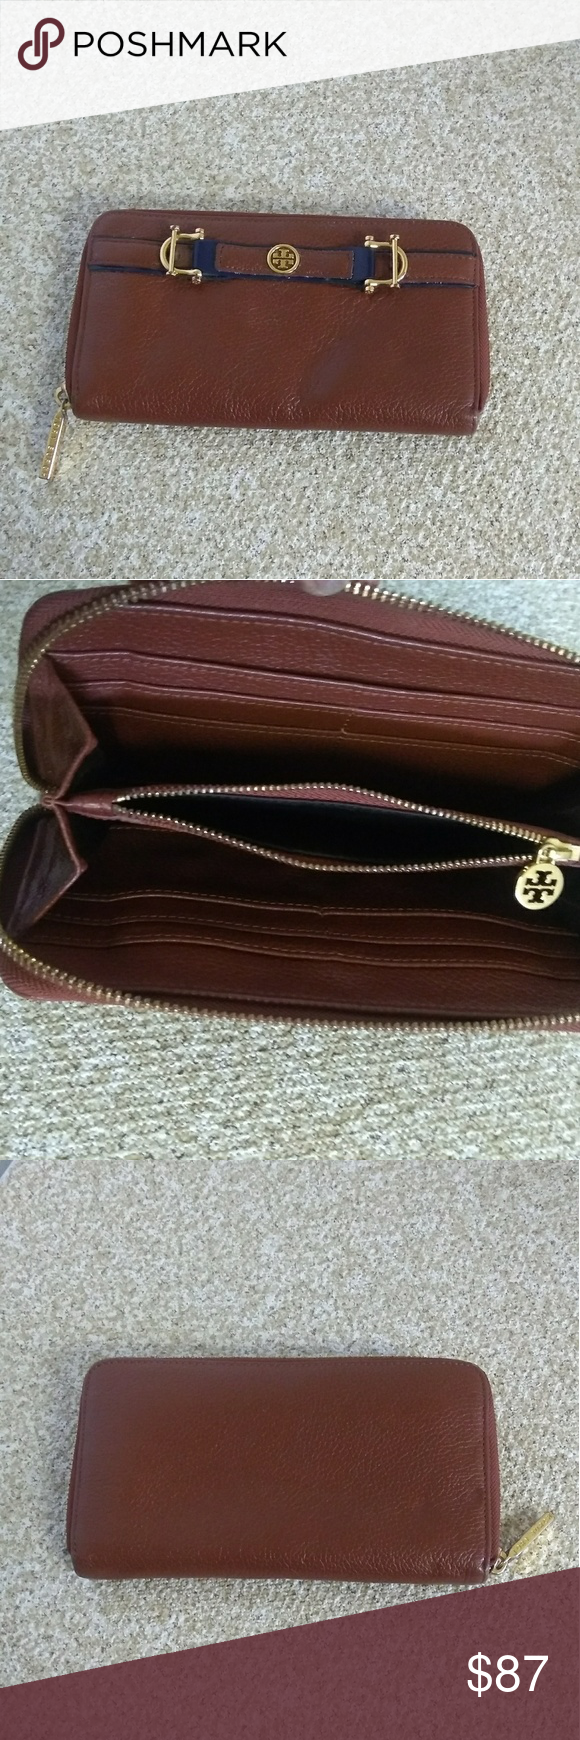 46eb25eb3382 Tory Burch Brown Pebbled Leather Clutch Like new preowned Tory Burch brown  pebbled leather zip around clutch wallet. Tory Burch Bags Wallets